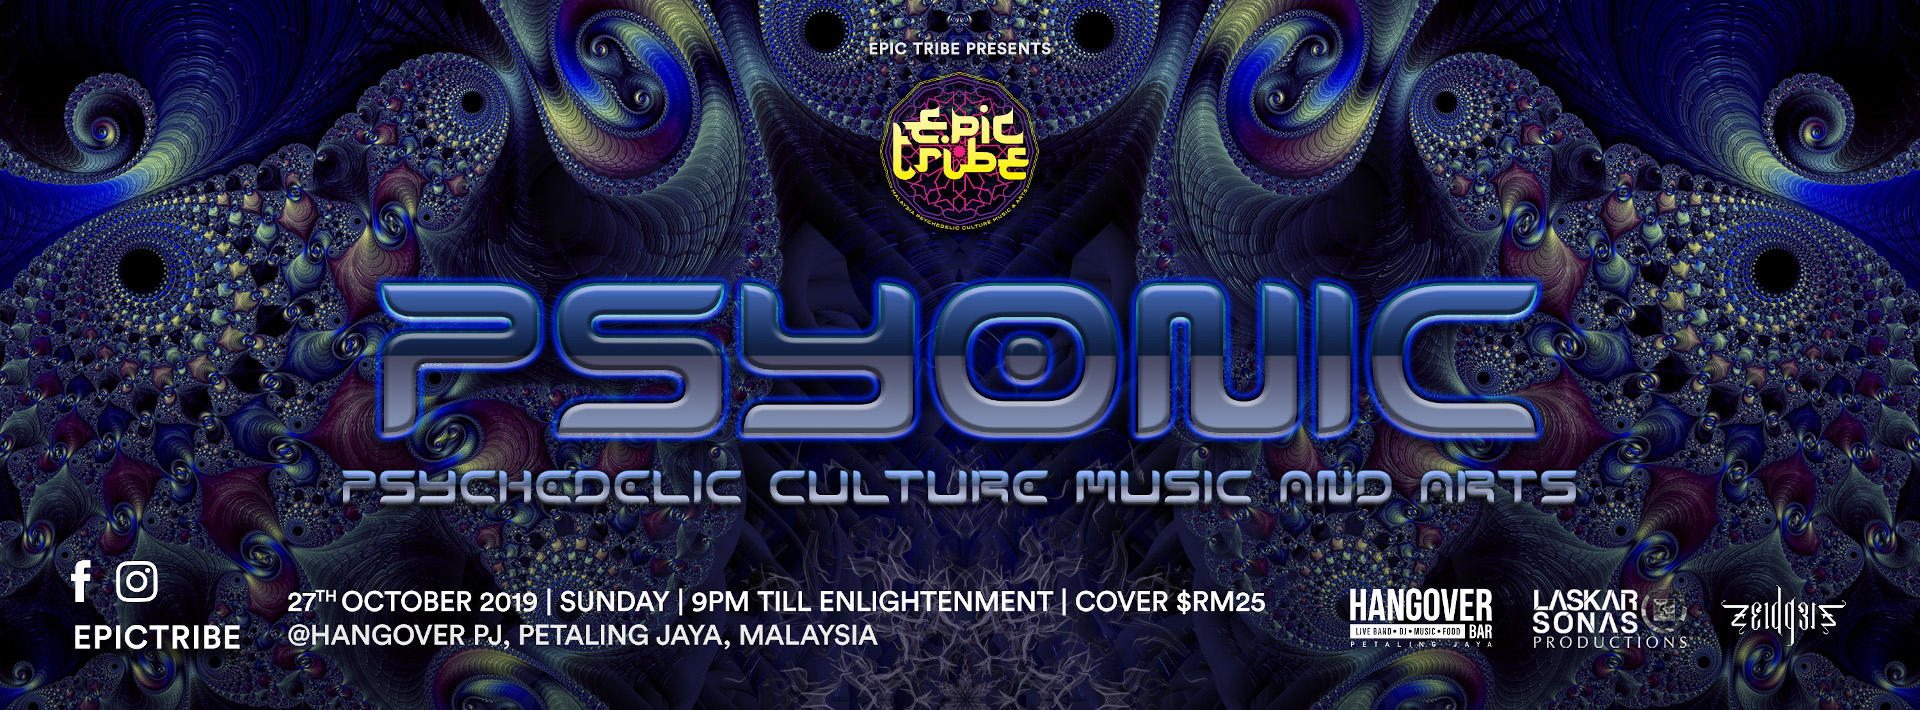 KL Events, Music Festivals and Live Concerts | Nocturnal